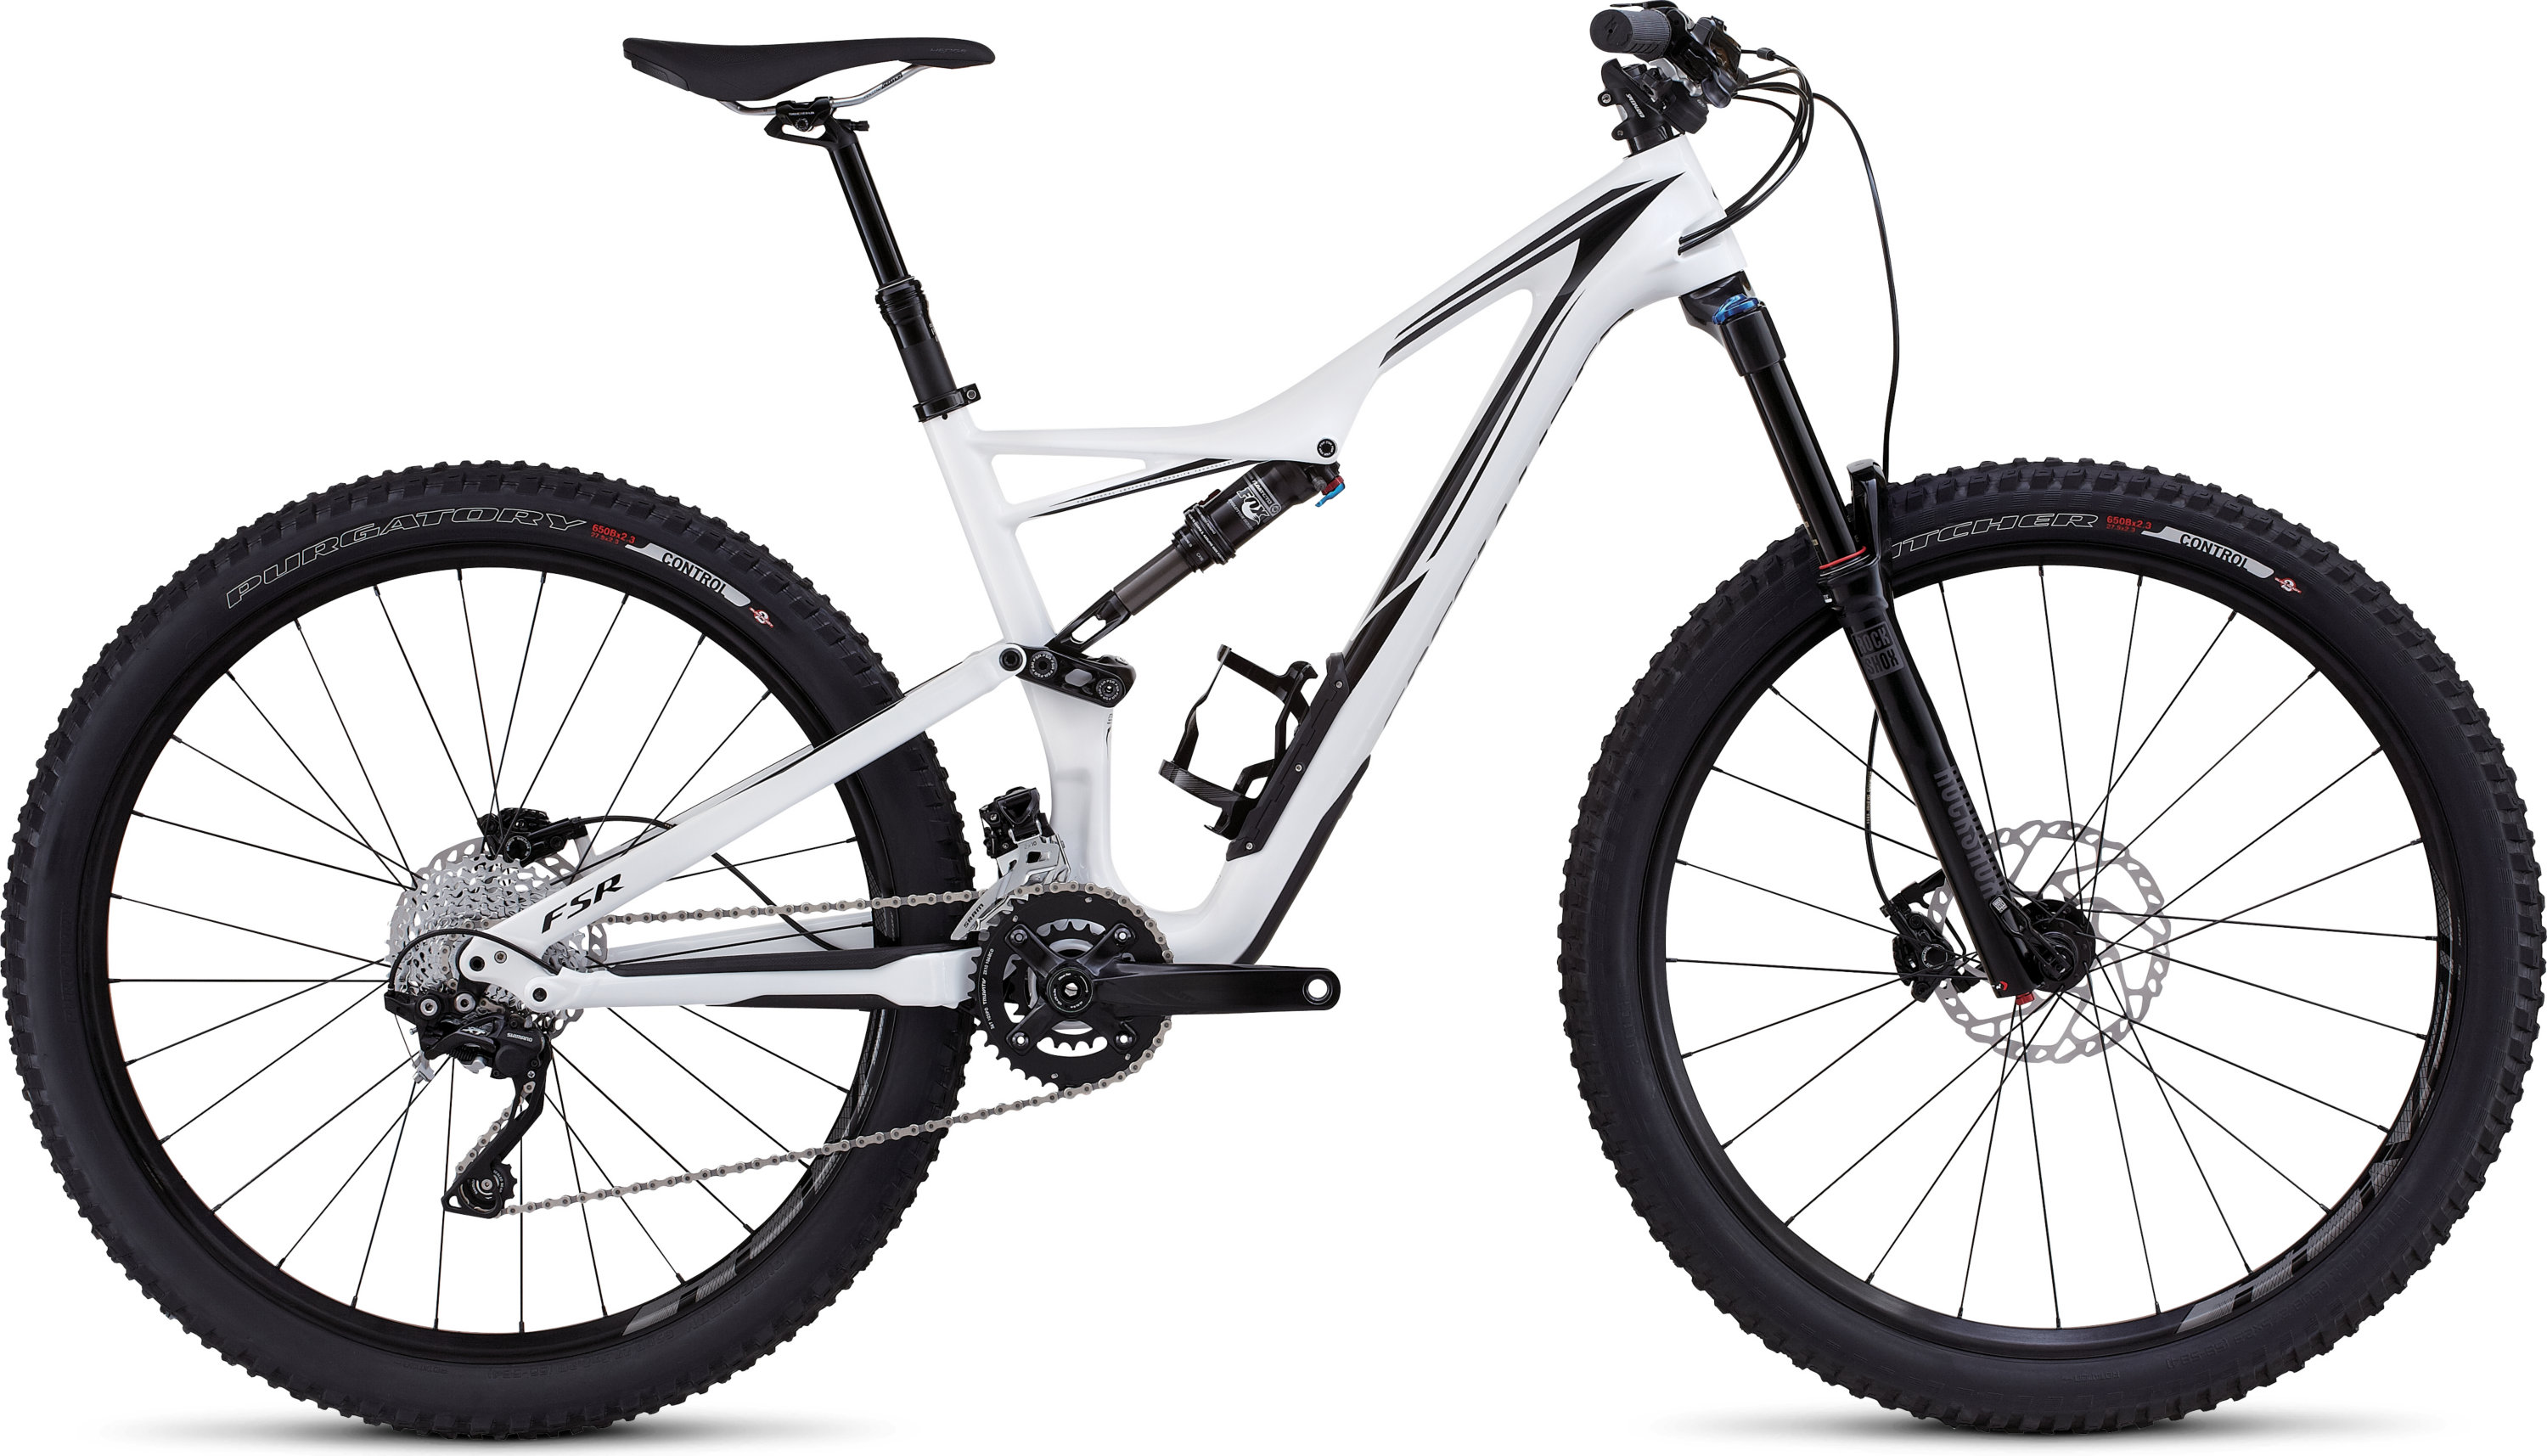 SPECIALIZED SJ FSR COMP CARBON 650B WHT/BLK S - schneider-sports